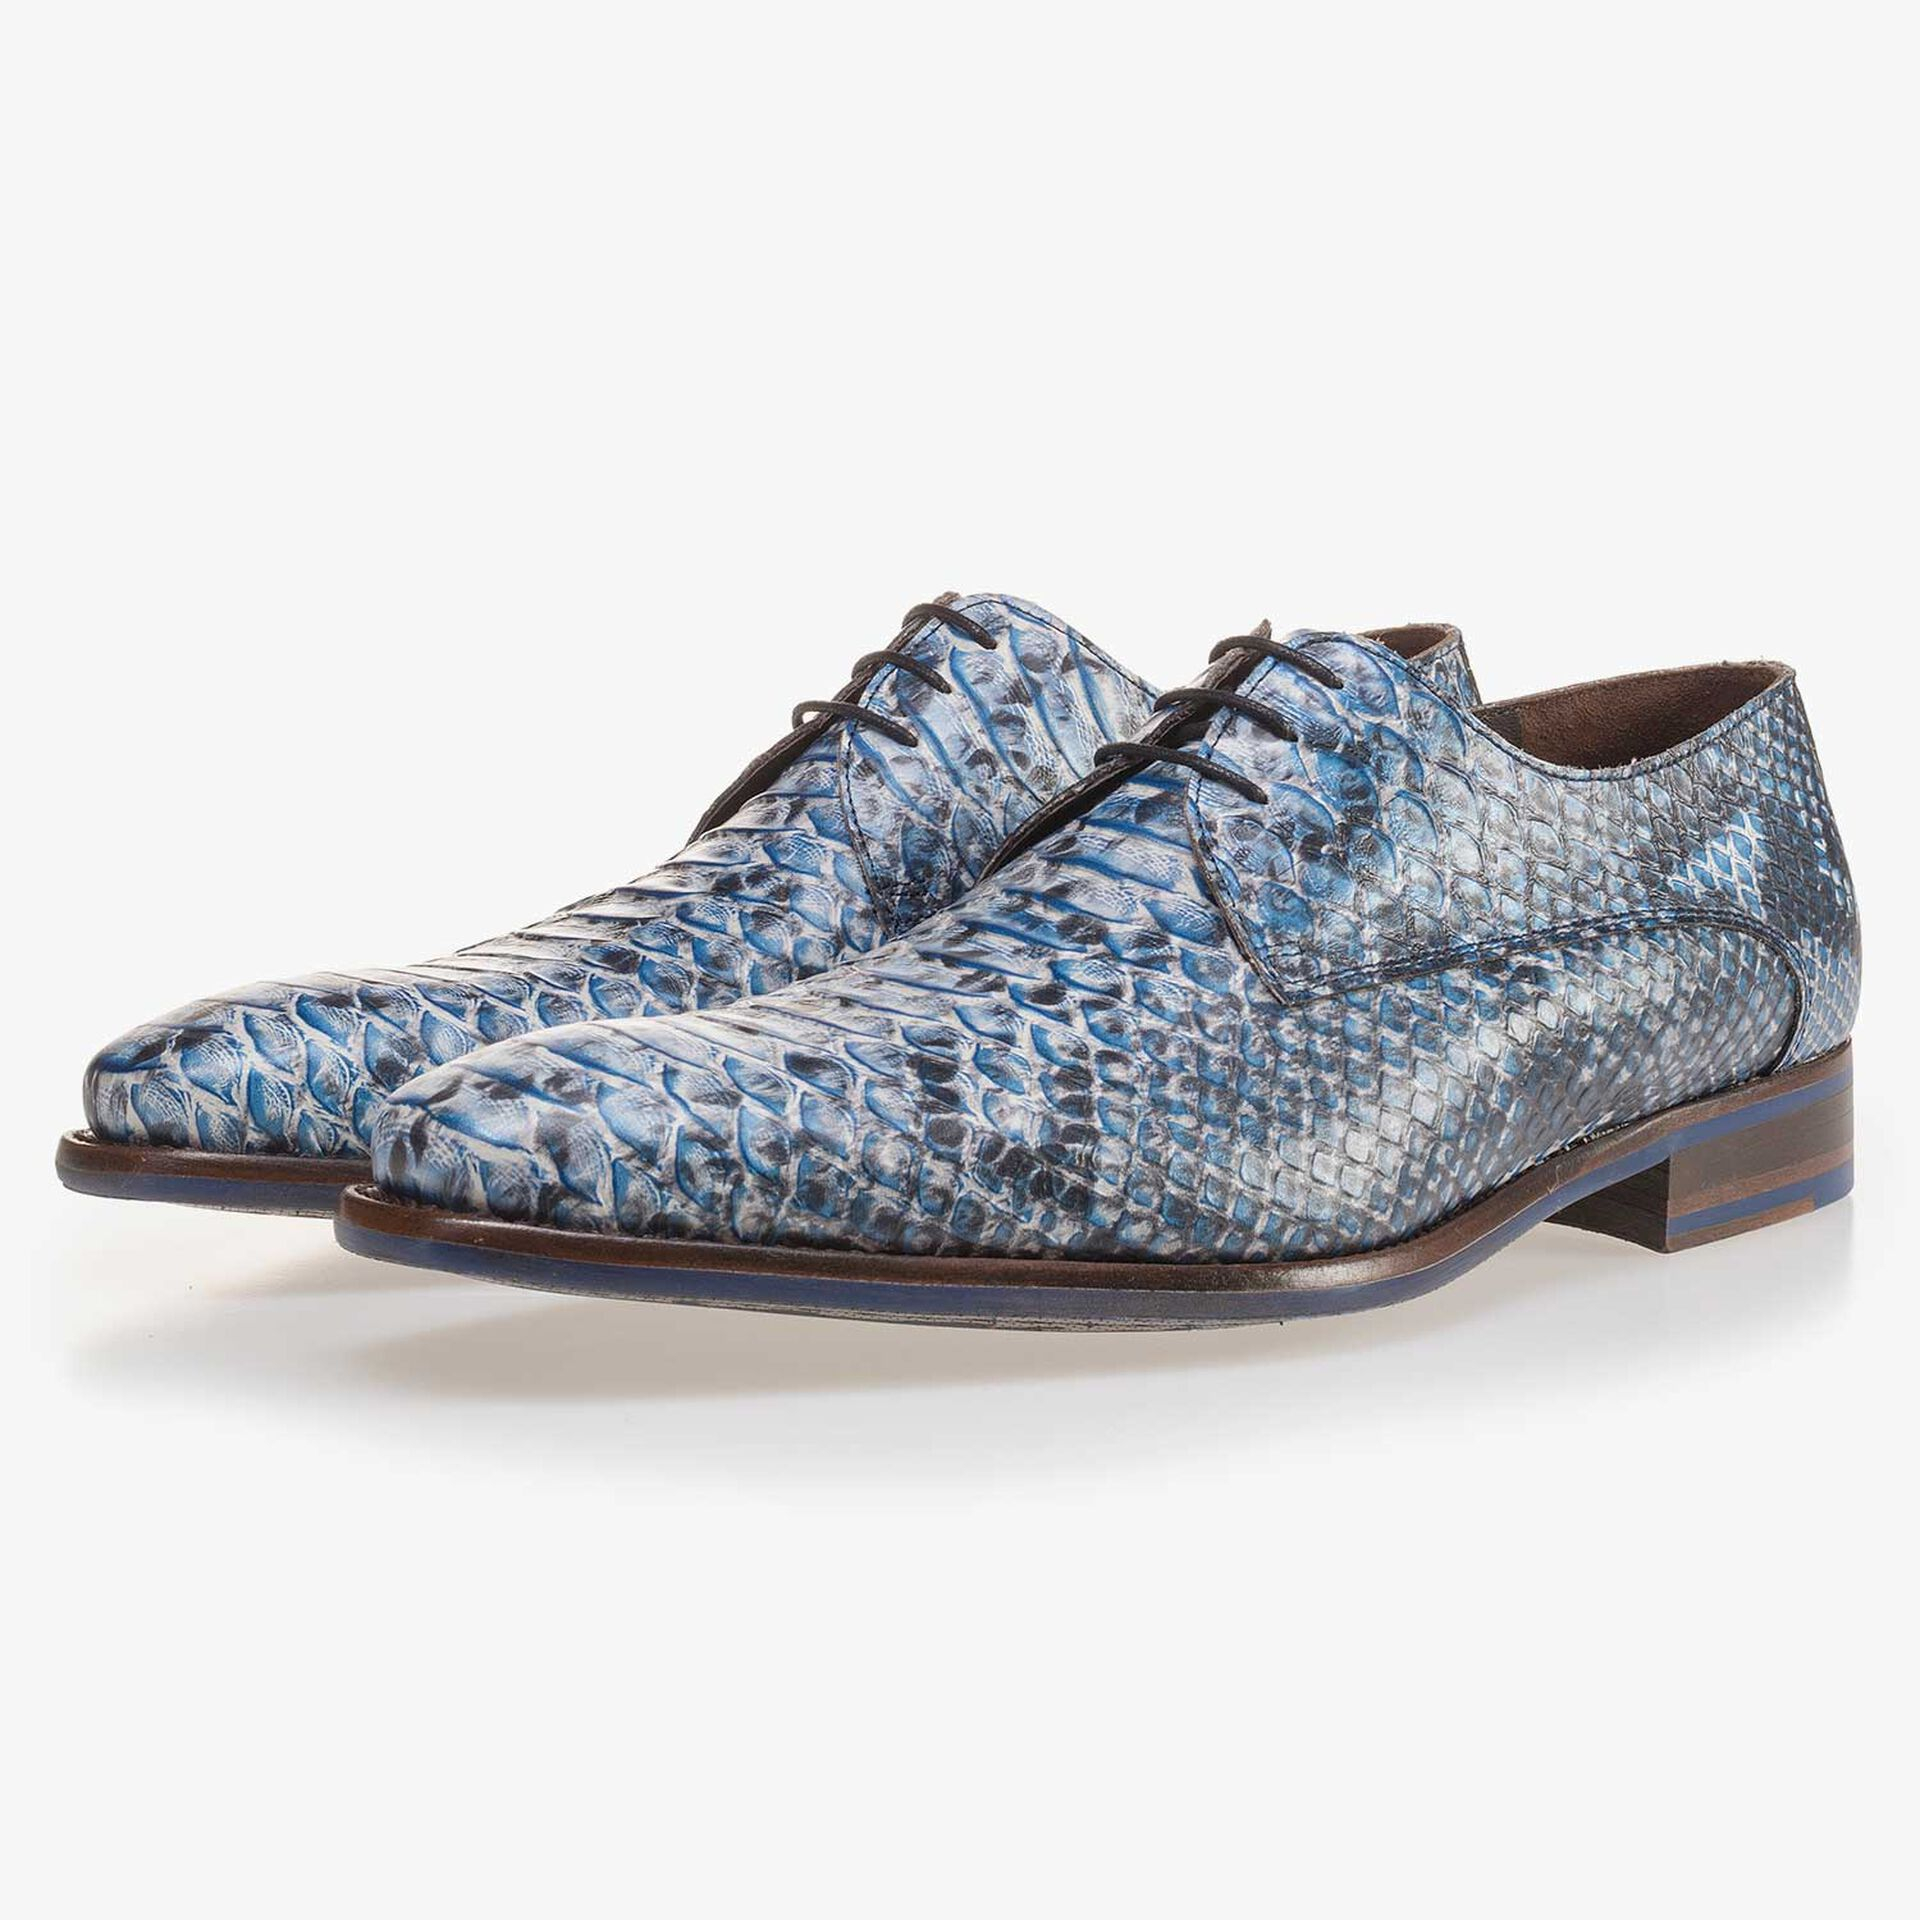 Blue leather lace shoe finished with a snake print